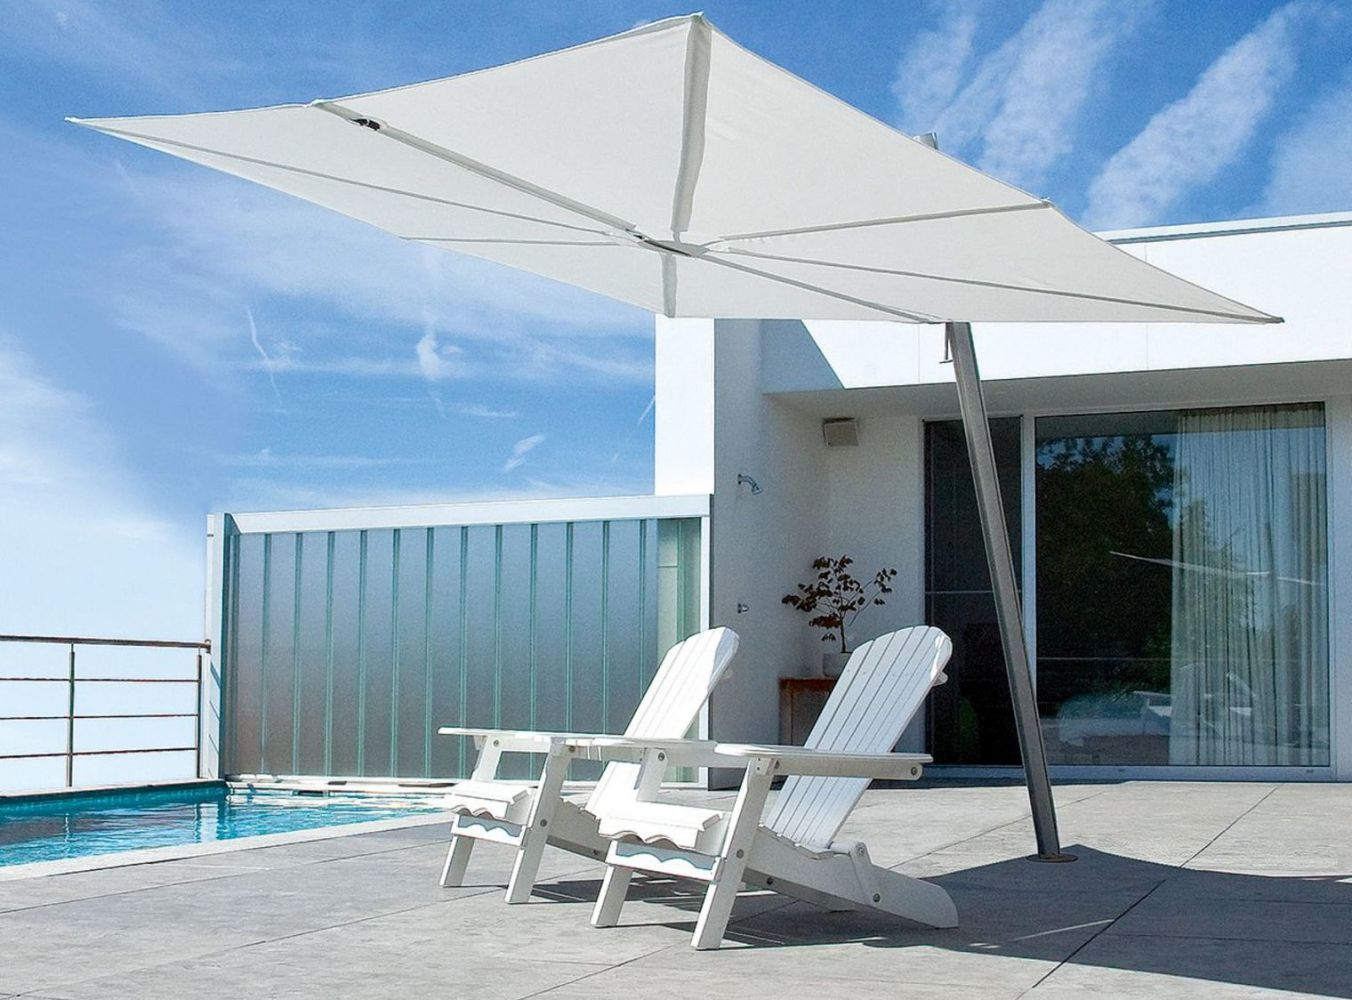 grand parasol design et moderne facile d ployer marseille meuble et d coration marseille. Black Bedroom Furniture Sets. Home Design Ideas